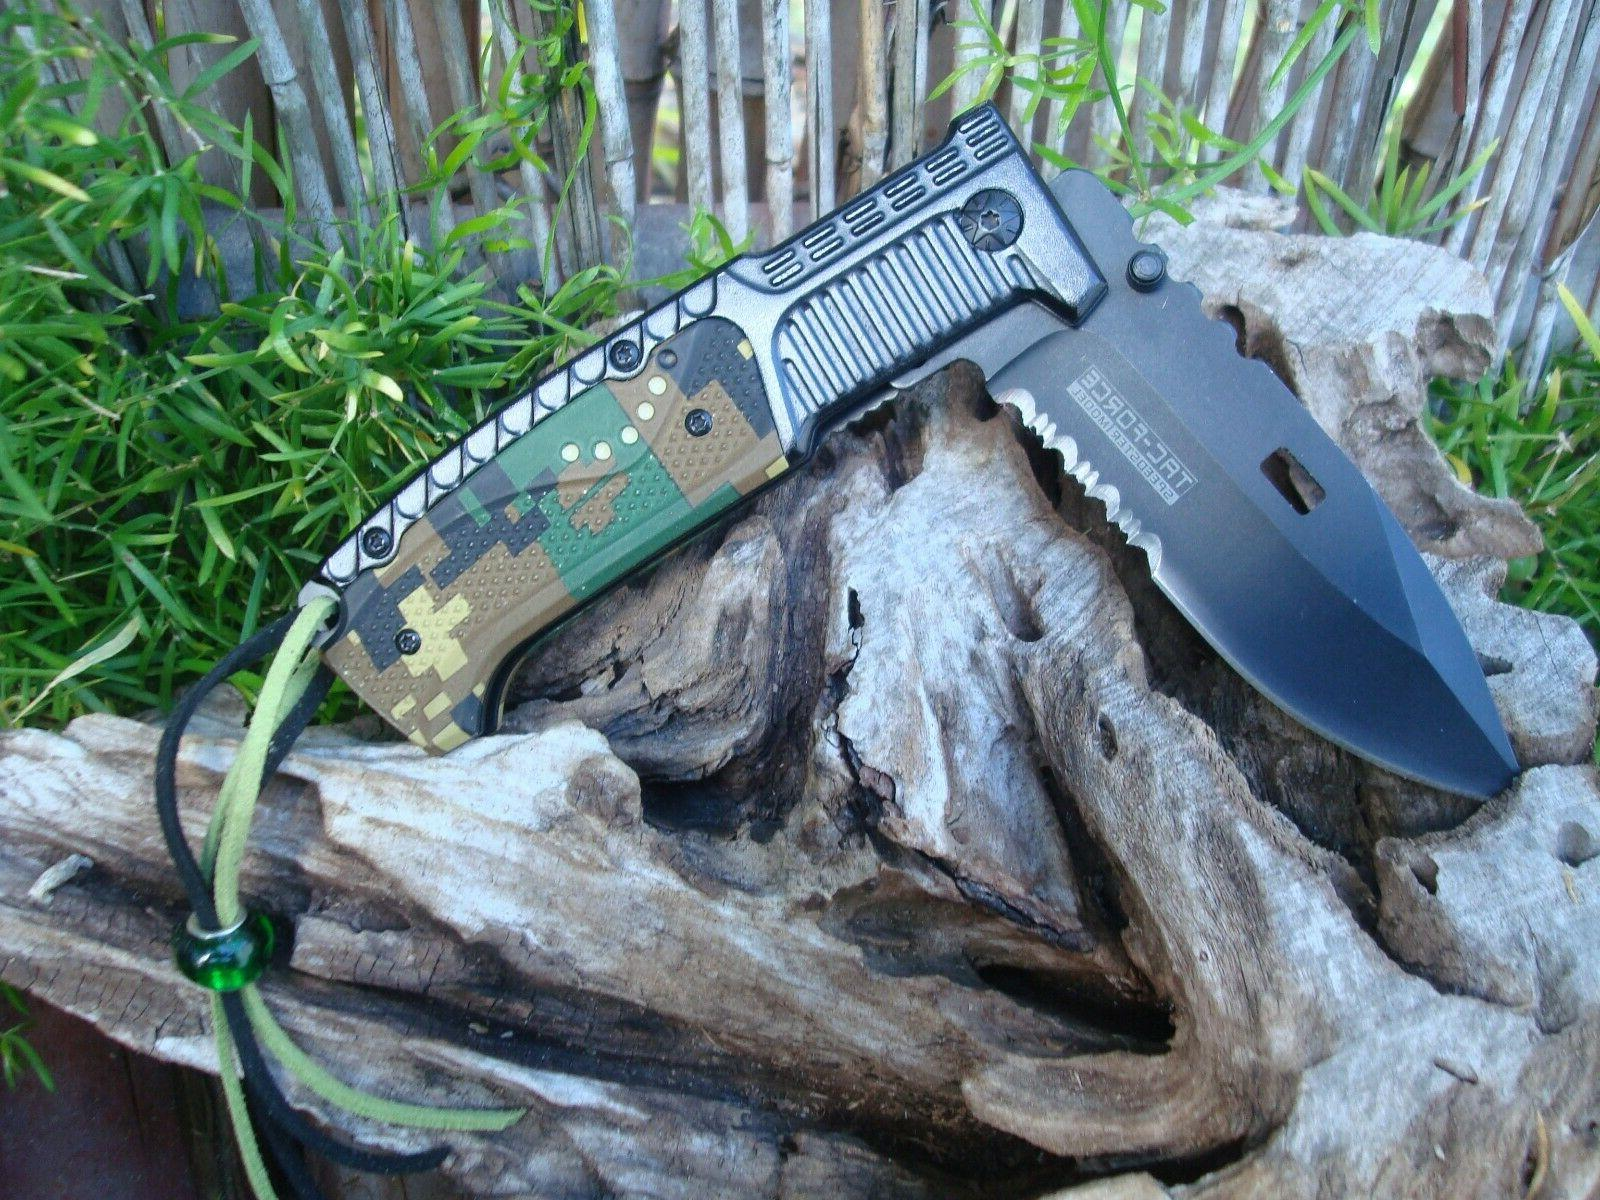 Collectible Knife, Finish Fine-Serrated Knife 928